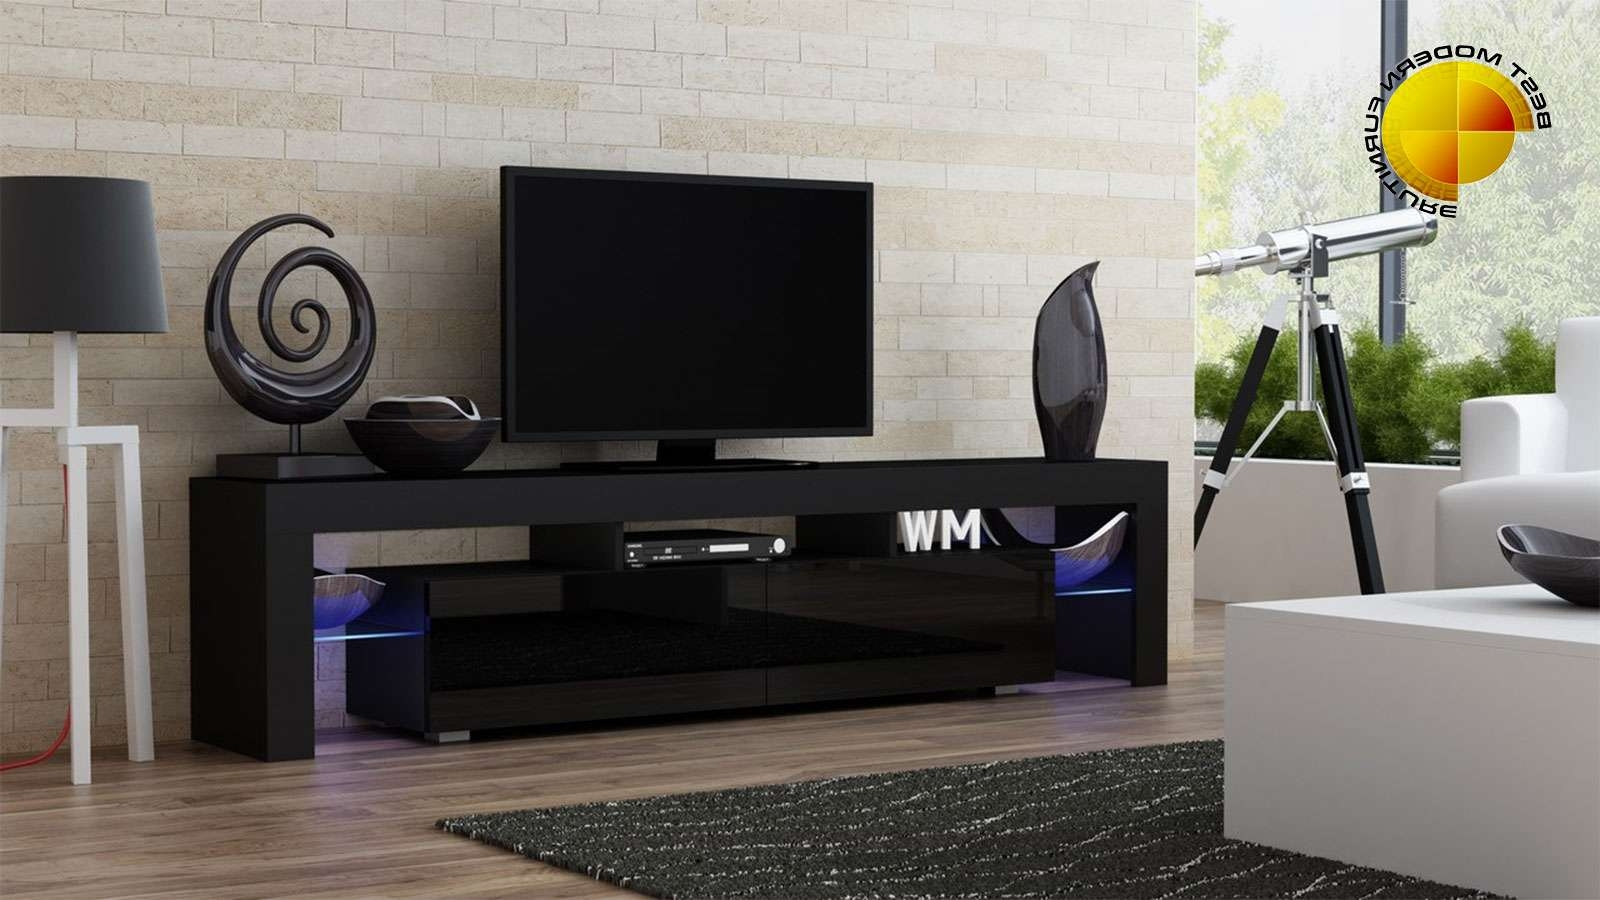 Modern Tv Stand 200Cm High Gloss Cabinet Rgb Led Lights Black Unit Throughout Gloss Tv Stands (View 12 of 15)